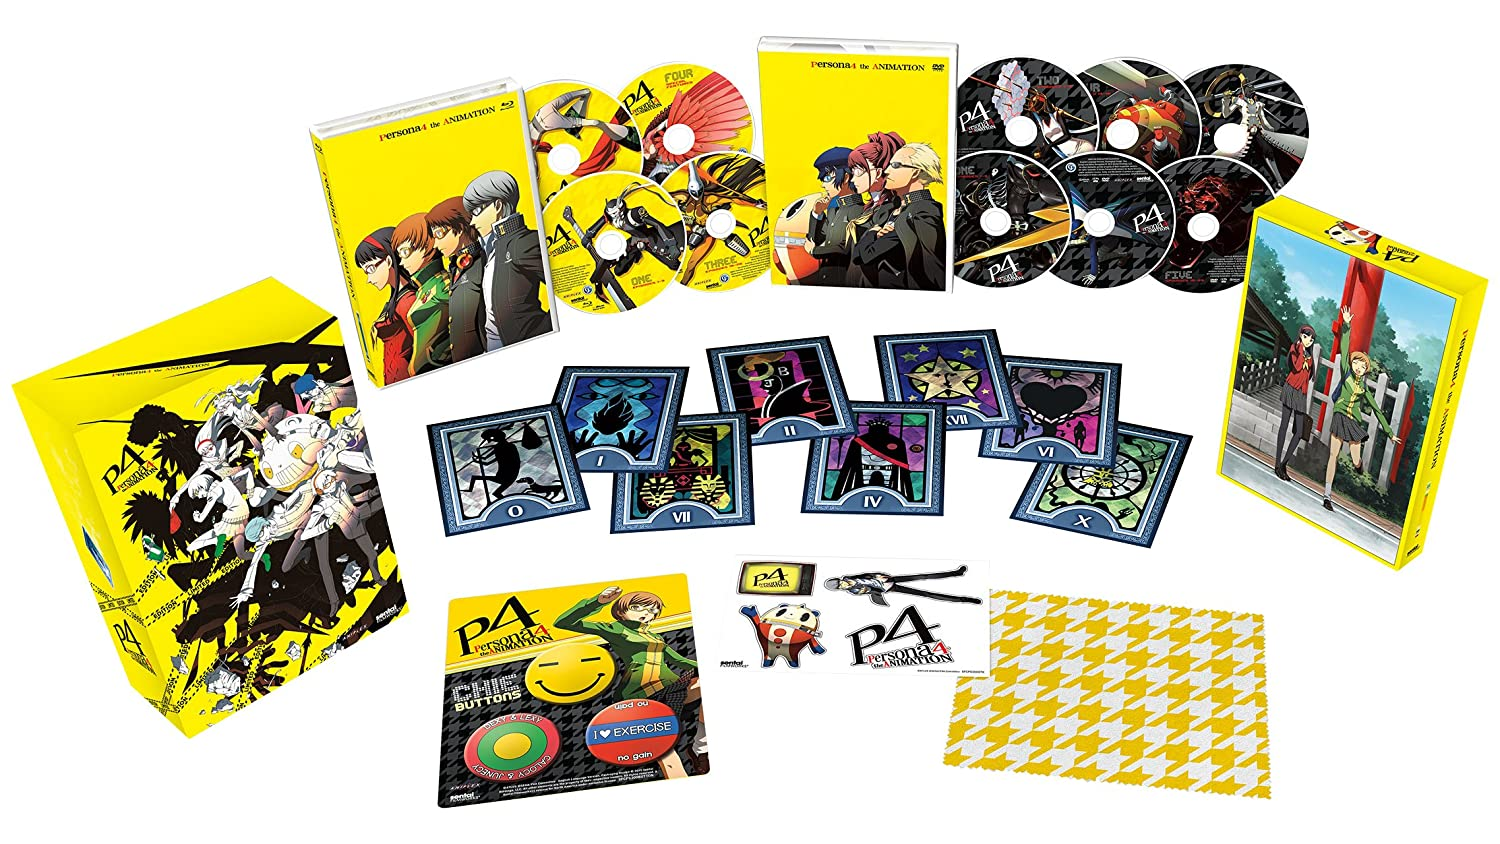 Gift Guide for Hardcore Persona 4 Fans - Game Idealist